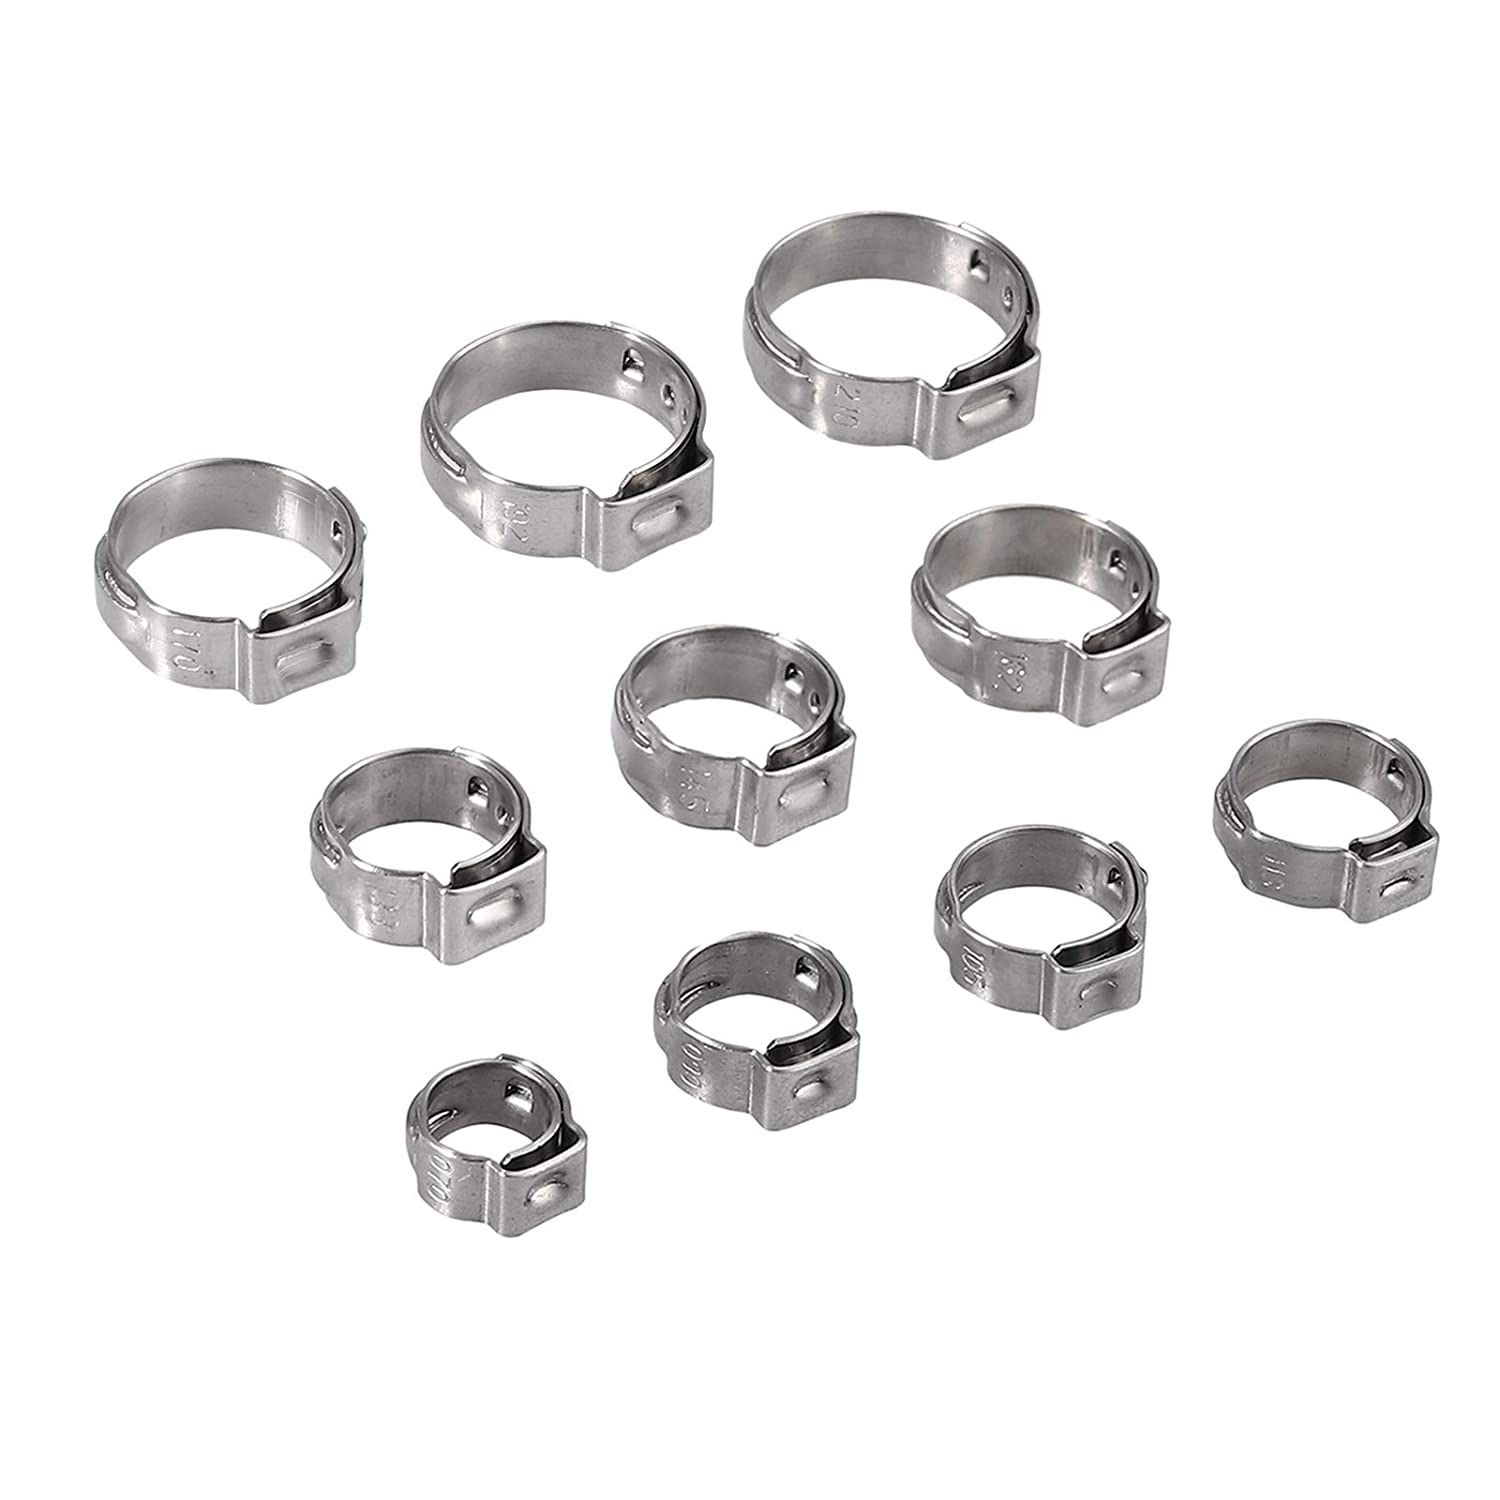 Stepless Hose Clamp AMTOVL Single Ear Stepless Hose Clamps Ear Hose Clamp Crimper 200pcs 5.8-21mm 304 Stainless Steel Cinch Clamp Rings Single Ear Pipe Clamps Crimper Tool Kit